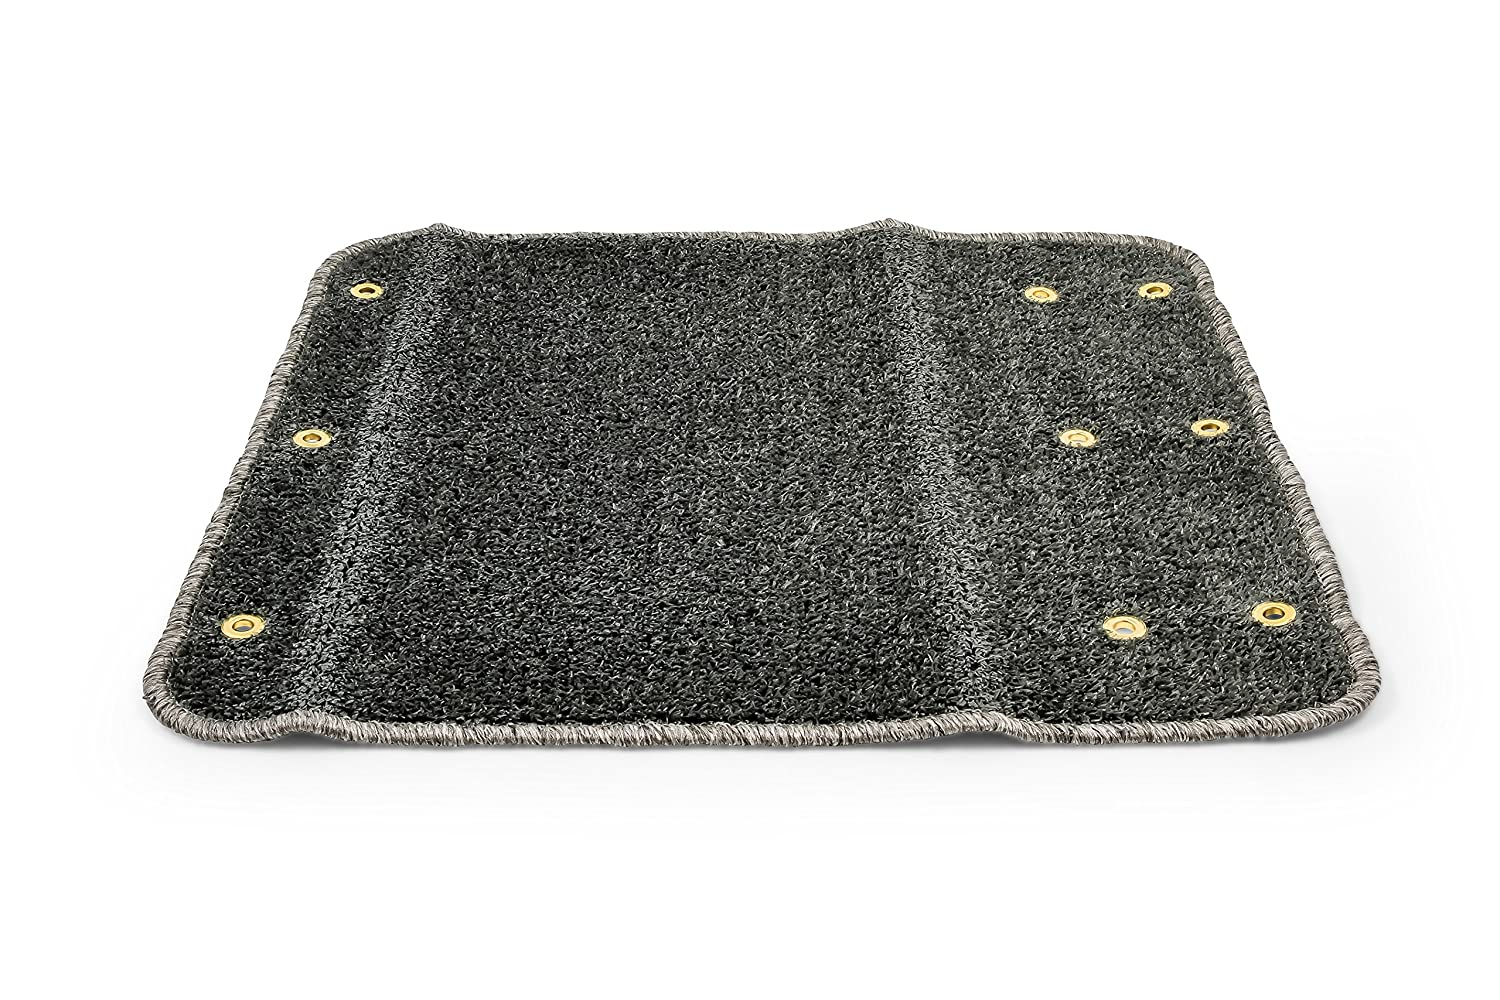 Turf Material Helps Trap Dirt and Debris 22 x 20 Trailer Step Rug Brown Camco RV Camper Premium Wrap Around Design 42938